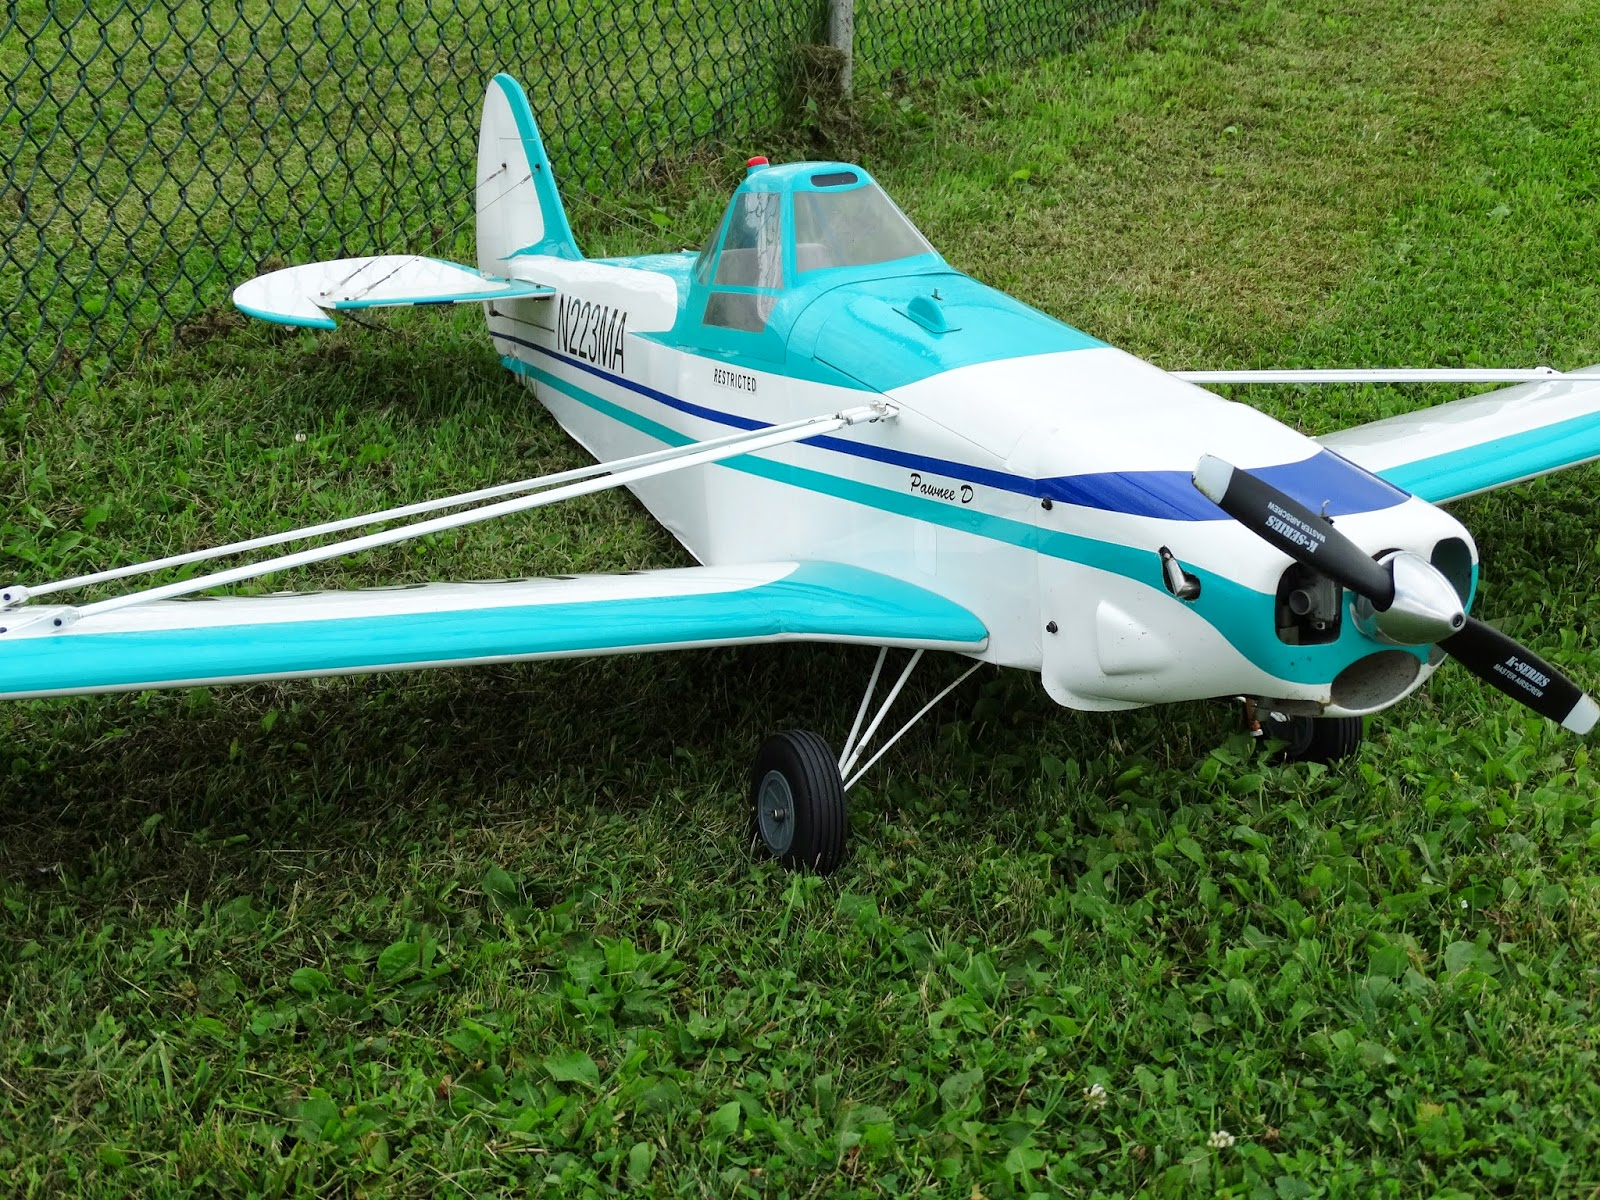 Dunrobin Rc Flyers 2014 New To Planes Need Some Guidance Rcpowerscom Check Out The Videos For Picnic